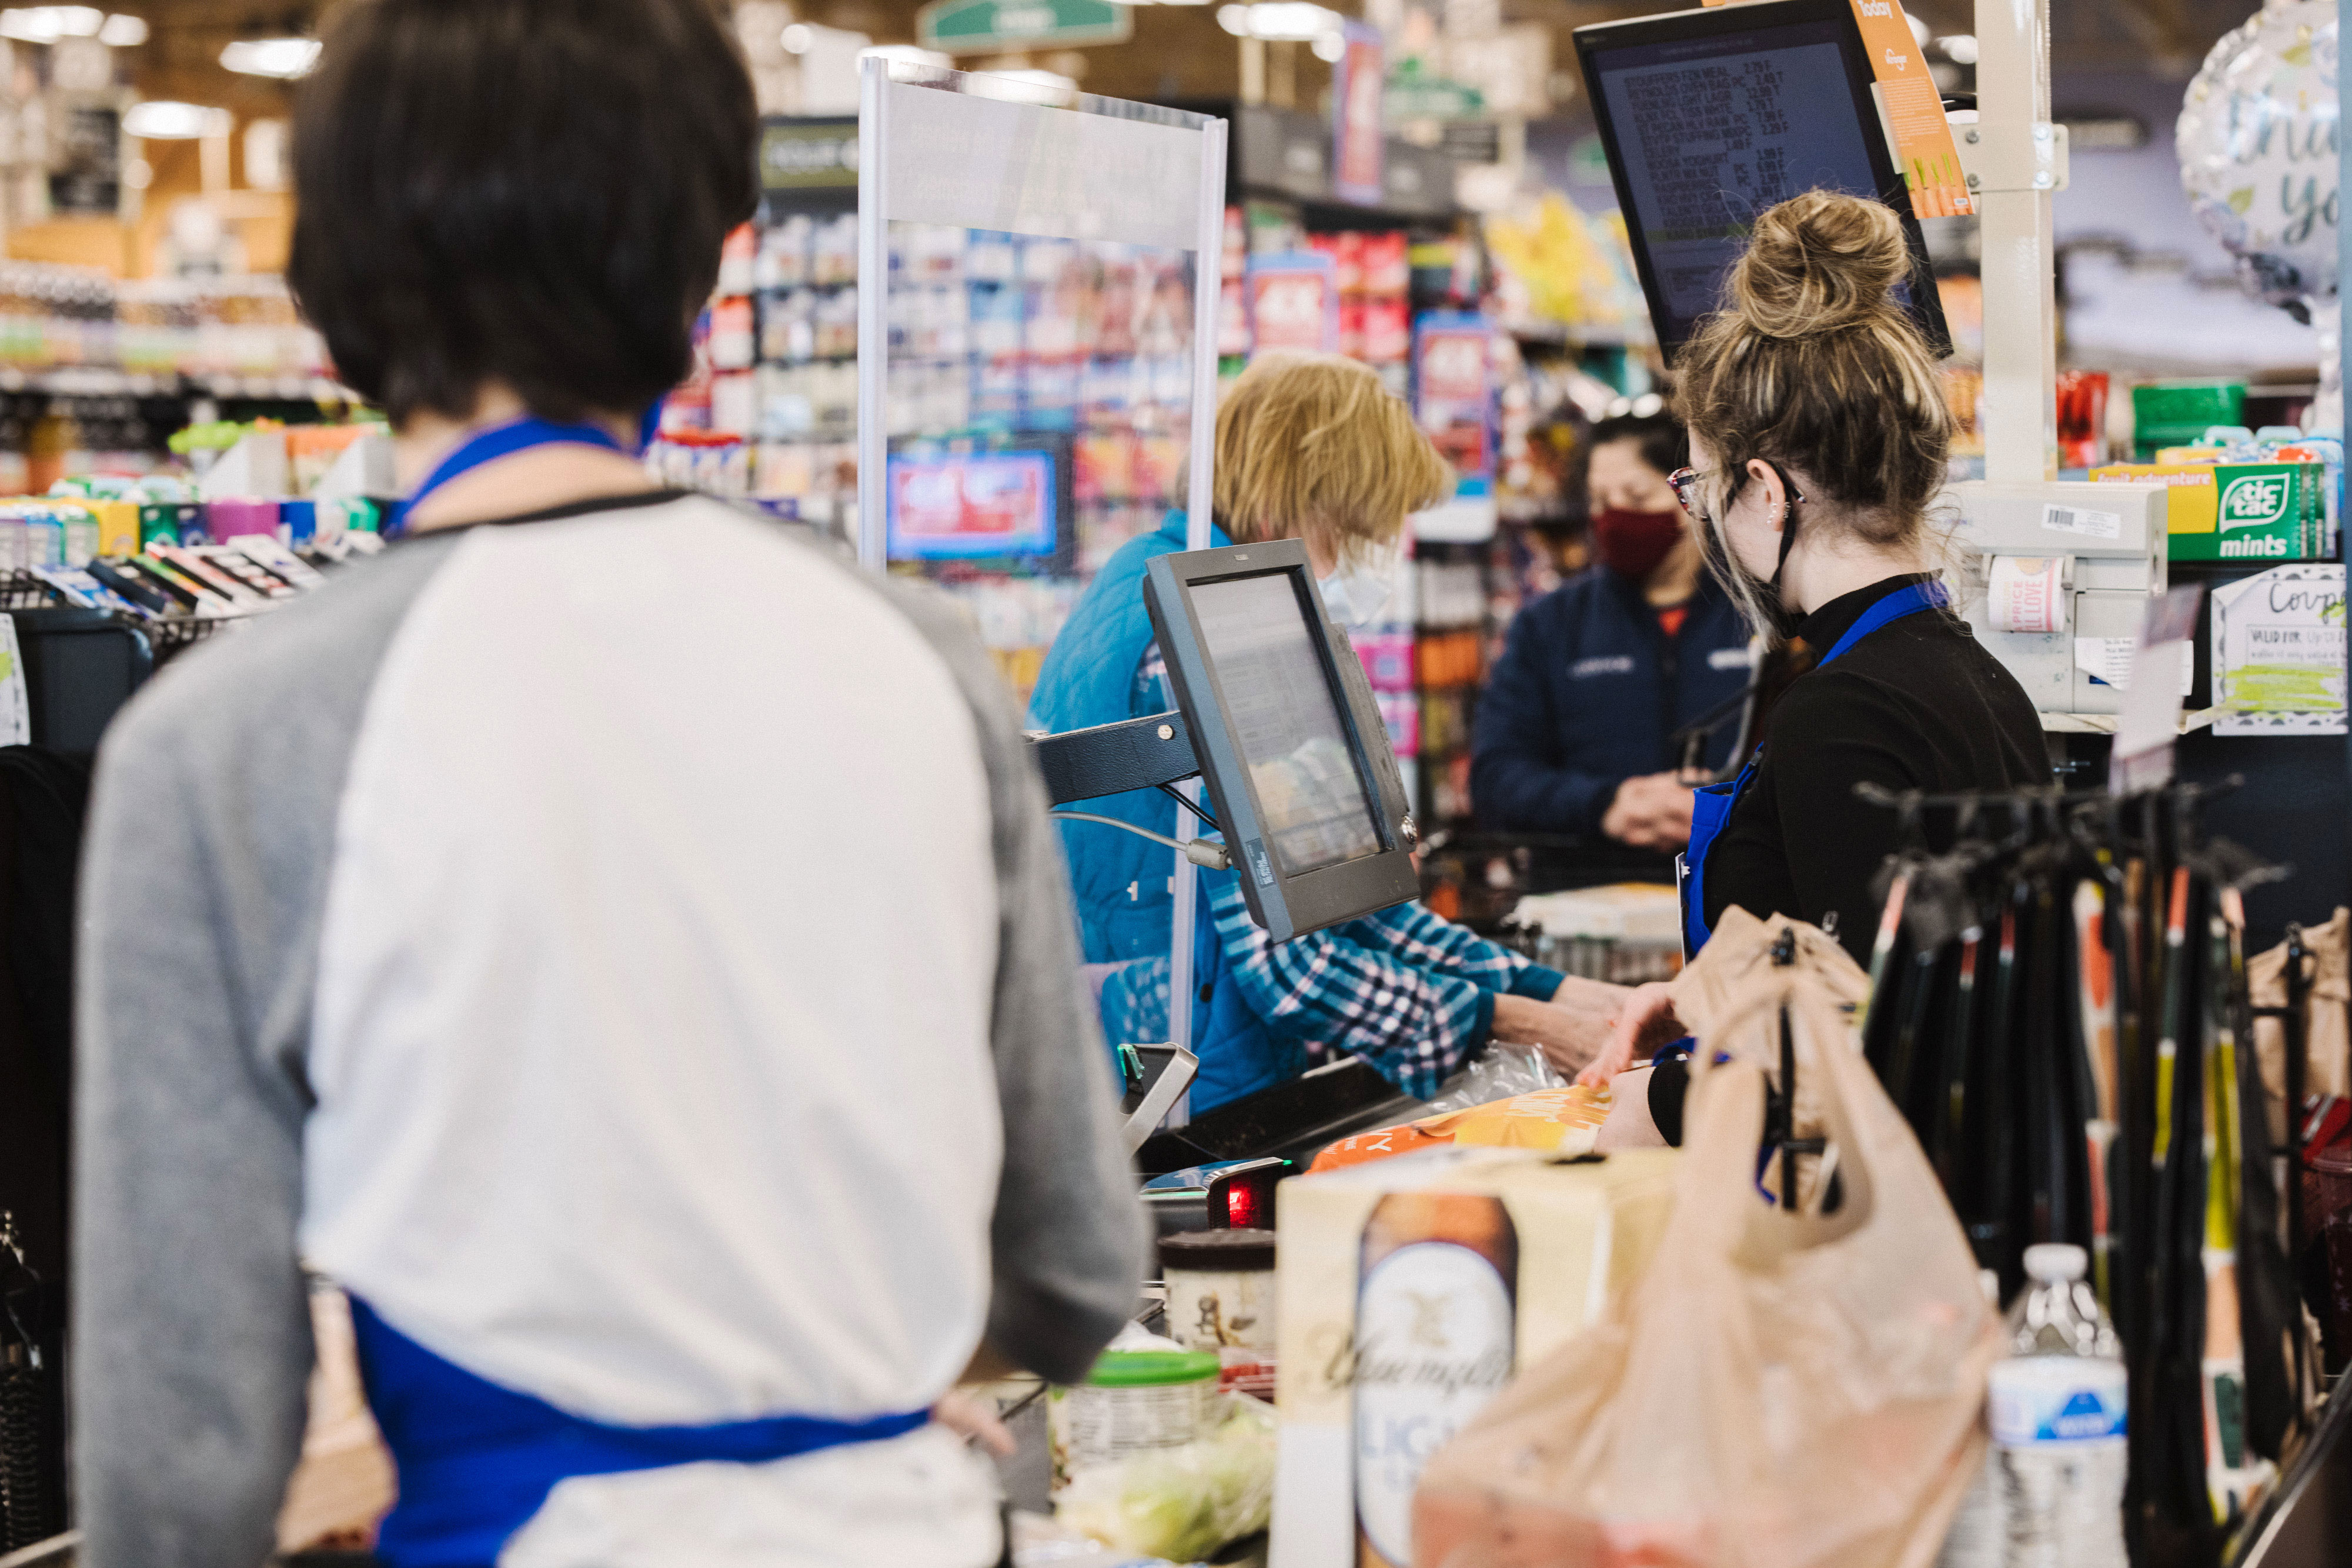 A Kroger worker assists a customer at the checkout counter in Versailles, Kentucky, in November 2020.